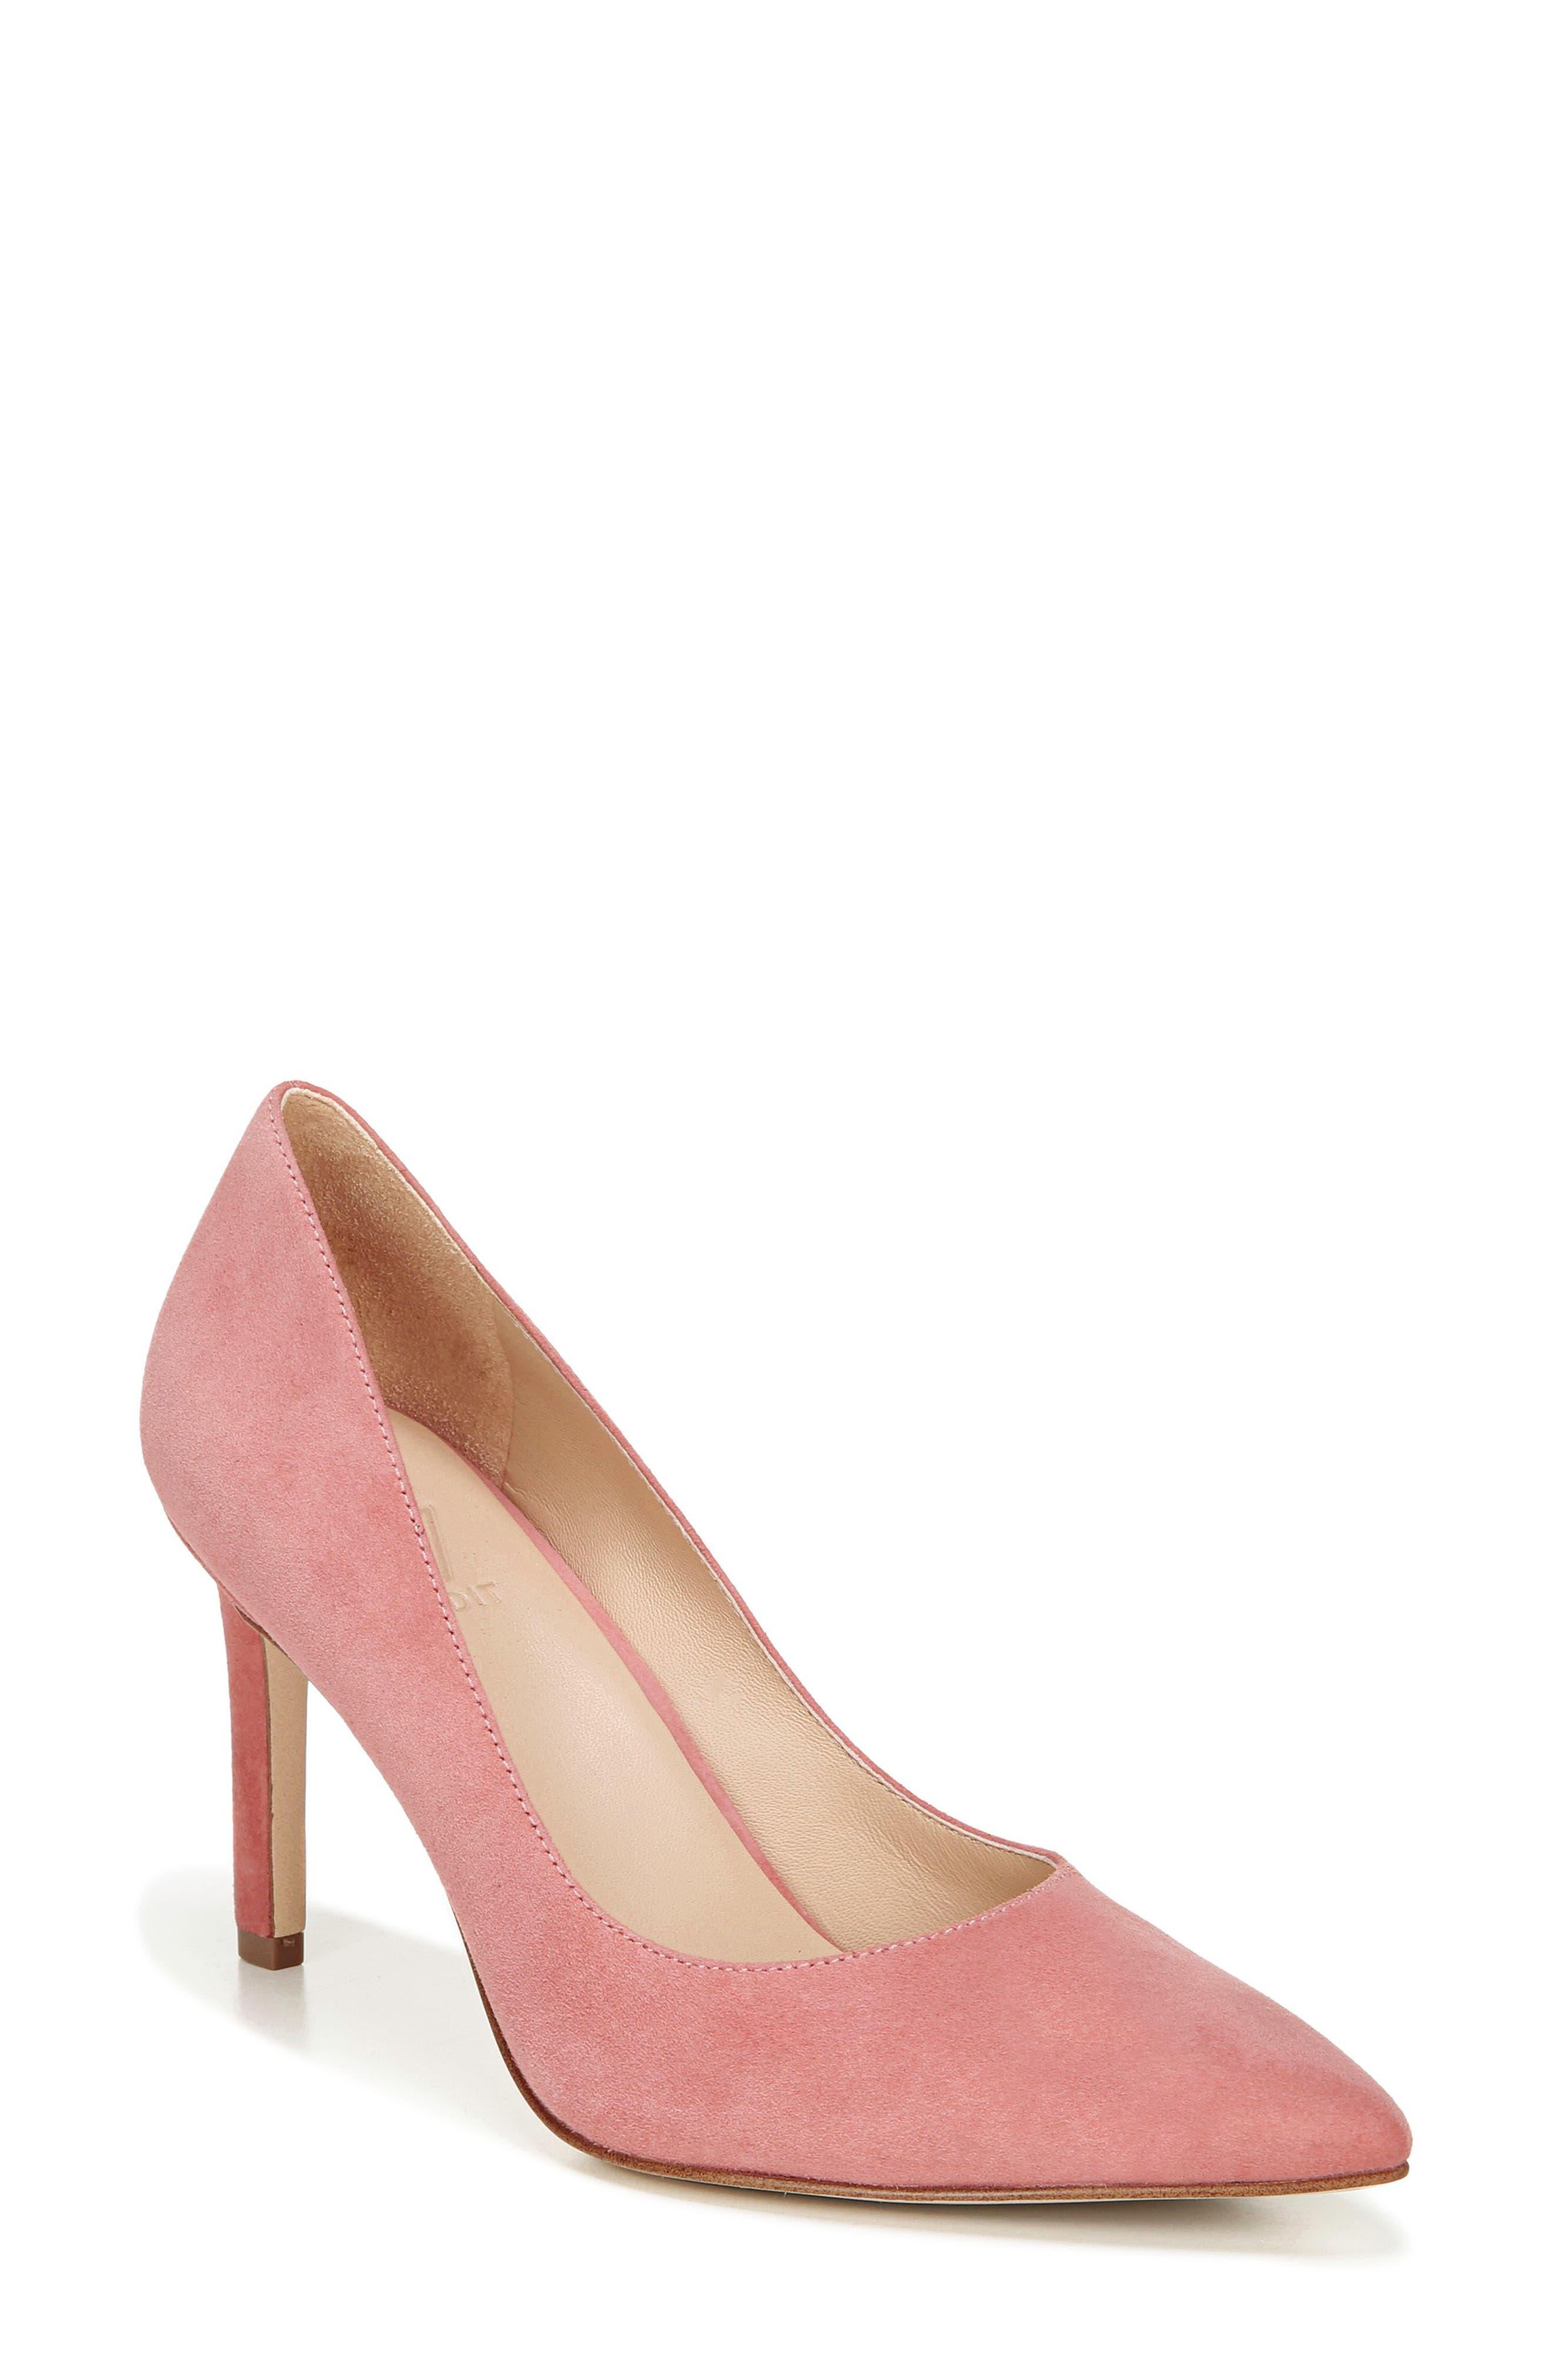 Image of 27 EDIT Alanna Pointed Toe Pump